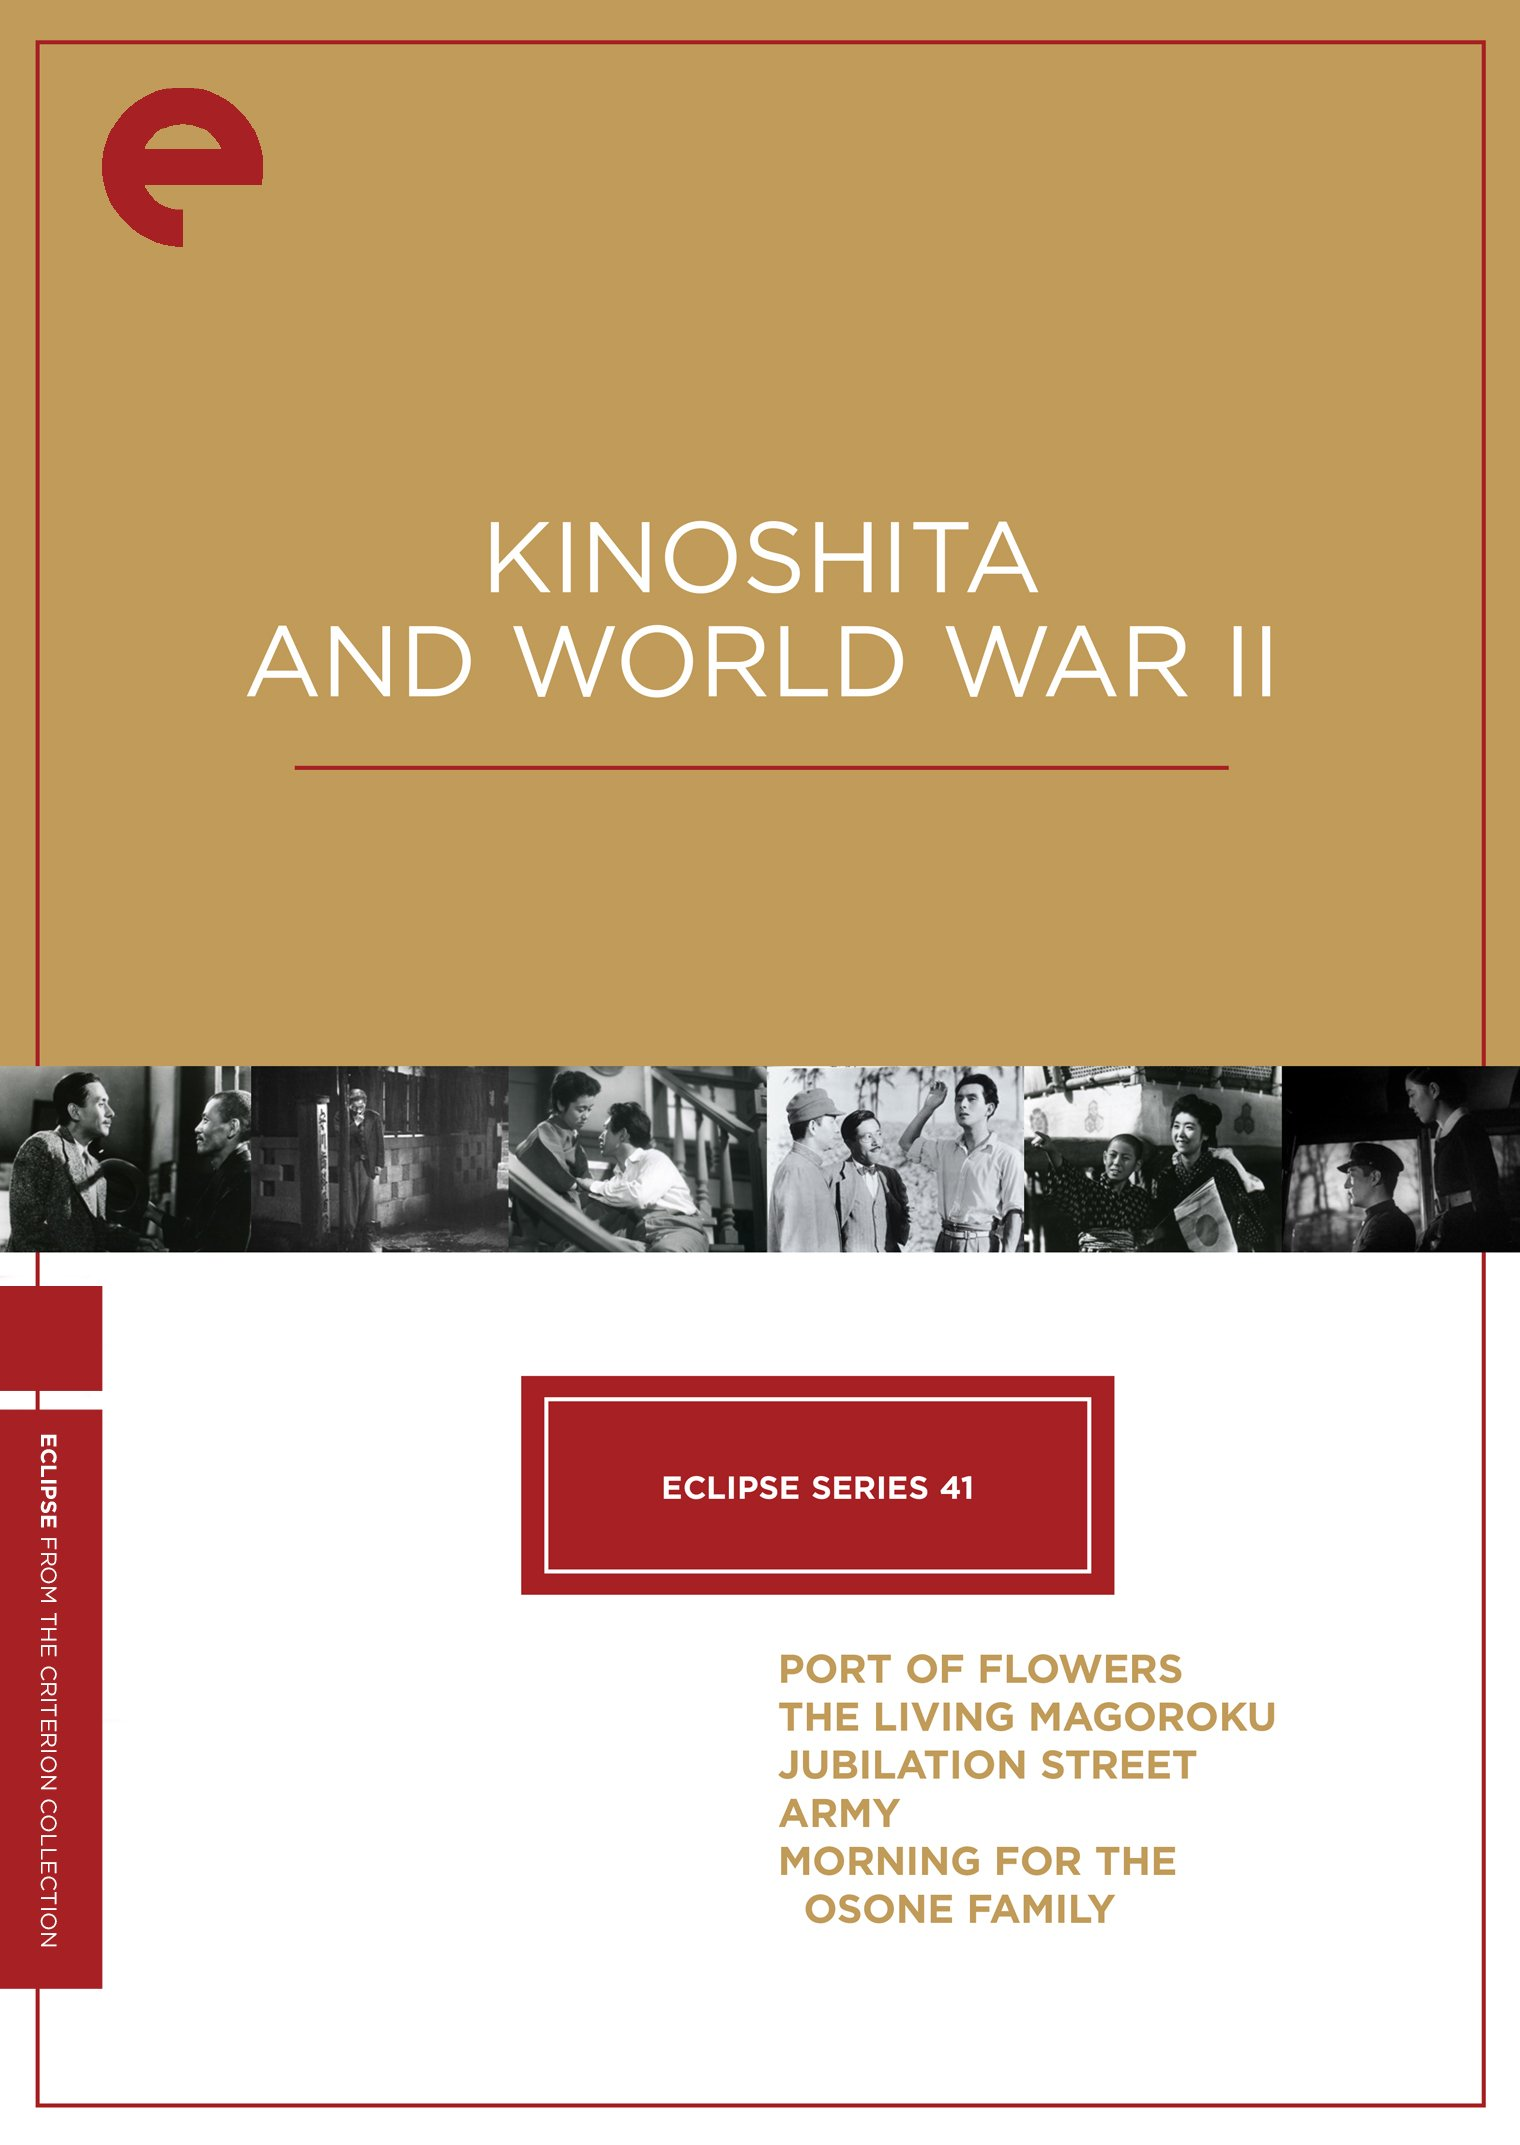 Eclipse Series 41: Kinoshita and World War II (PORT OF FLOWERS / THE LIVING MAGOROKU / JUBILATION STREET / ARMY / MORNING FOR THE OSONE FAMILY) (The Criterion Collection)